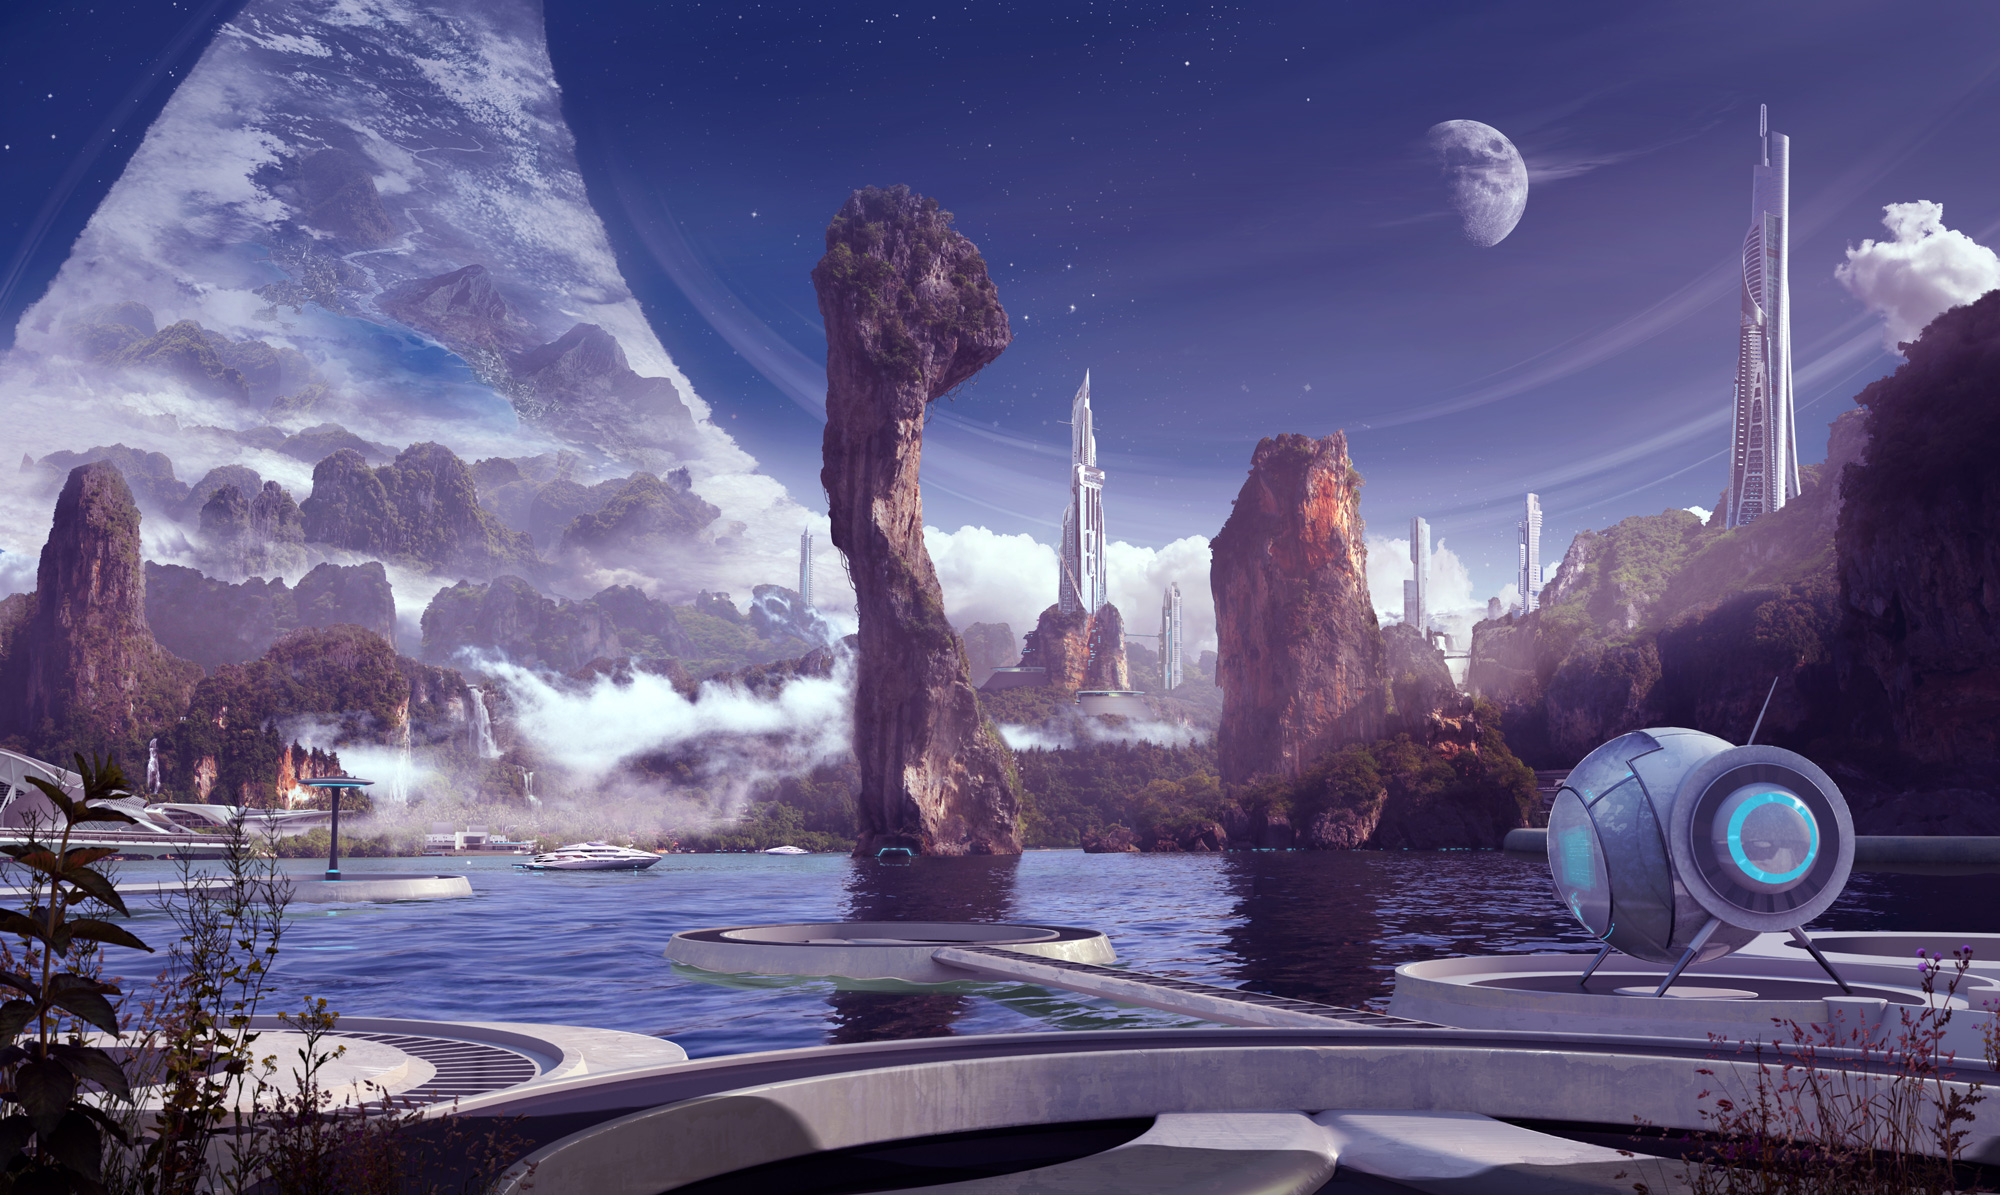 ringWorld 001 by everlite